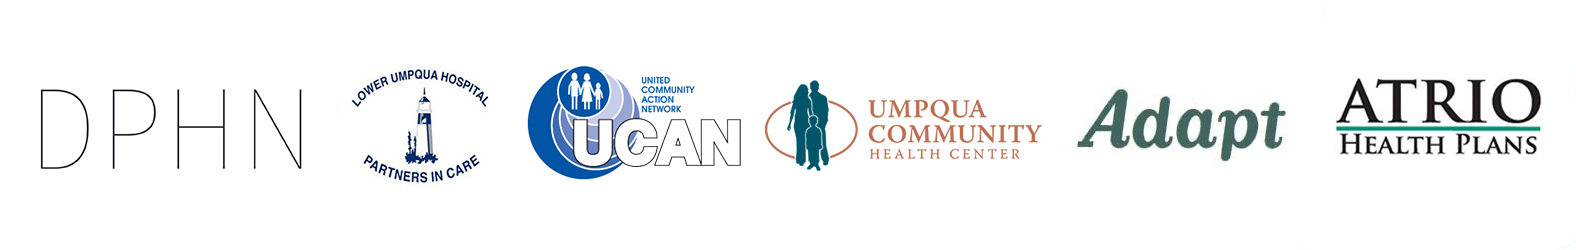 Douglas Public Health Network logo, lower umpqua hospital logo, united community action network logo, umpqua community health center logo, adapt logo, atrio health plans logo